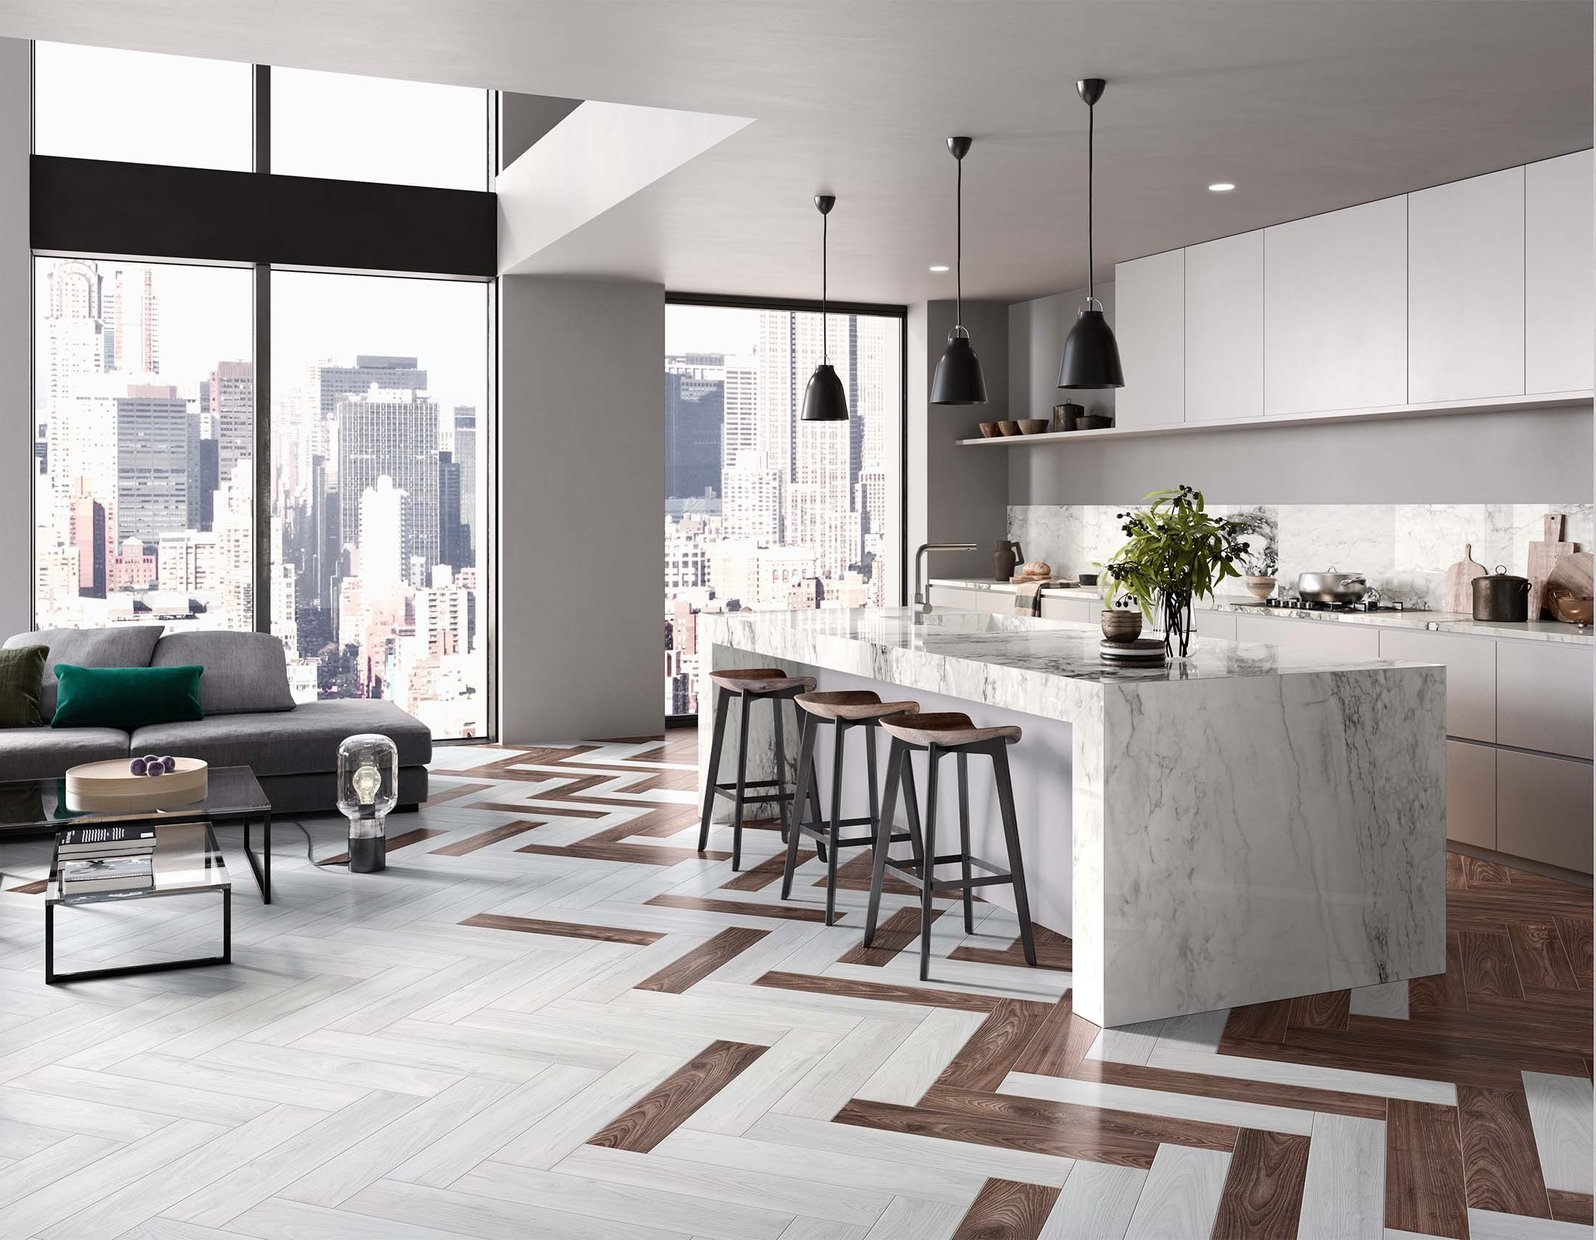 Classic wood Brown and White tiles Modern style Kitchen